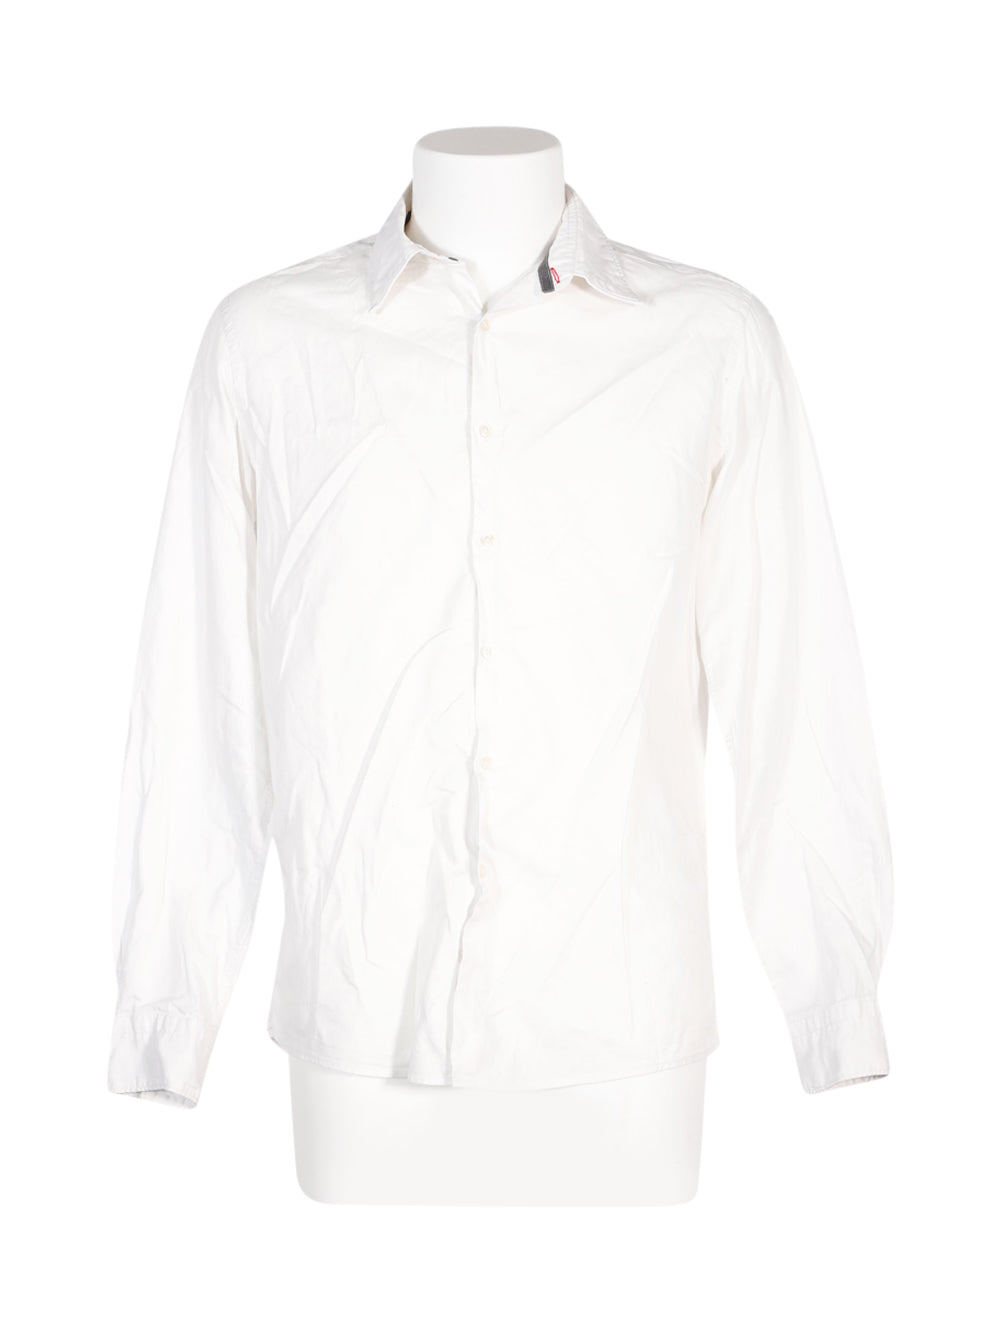 Front photo of Preloved golf club White Man's shirt - size 40/L